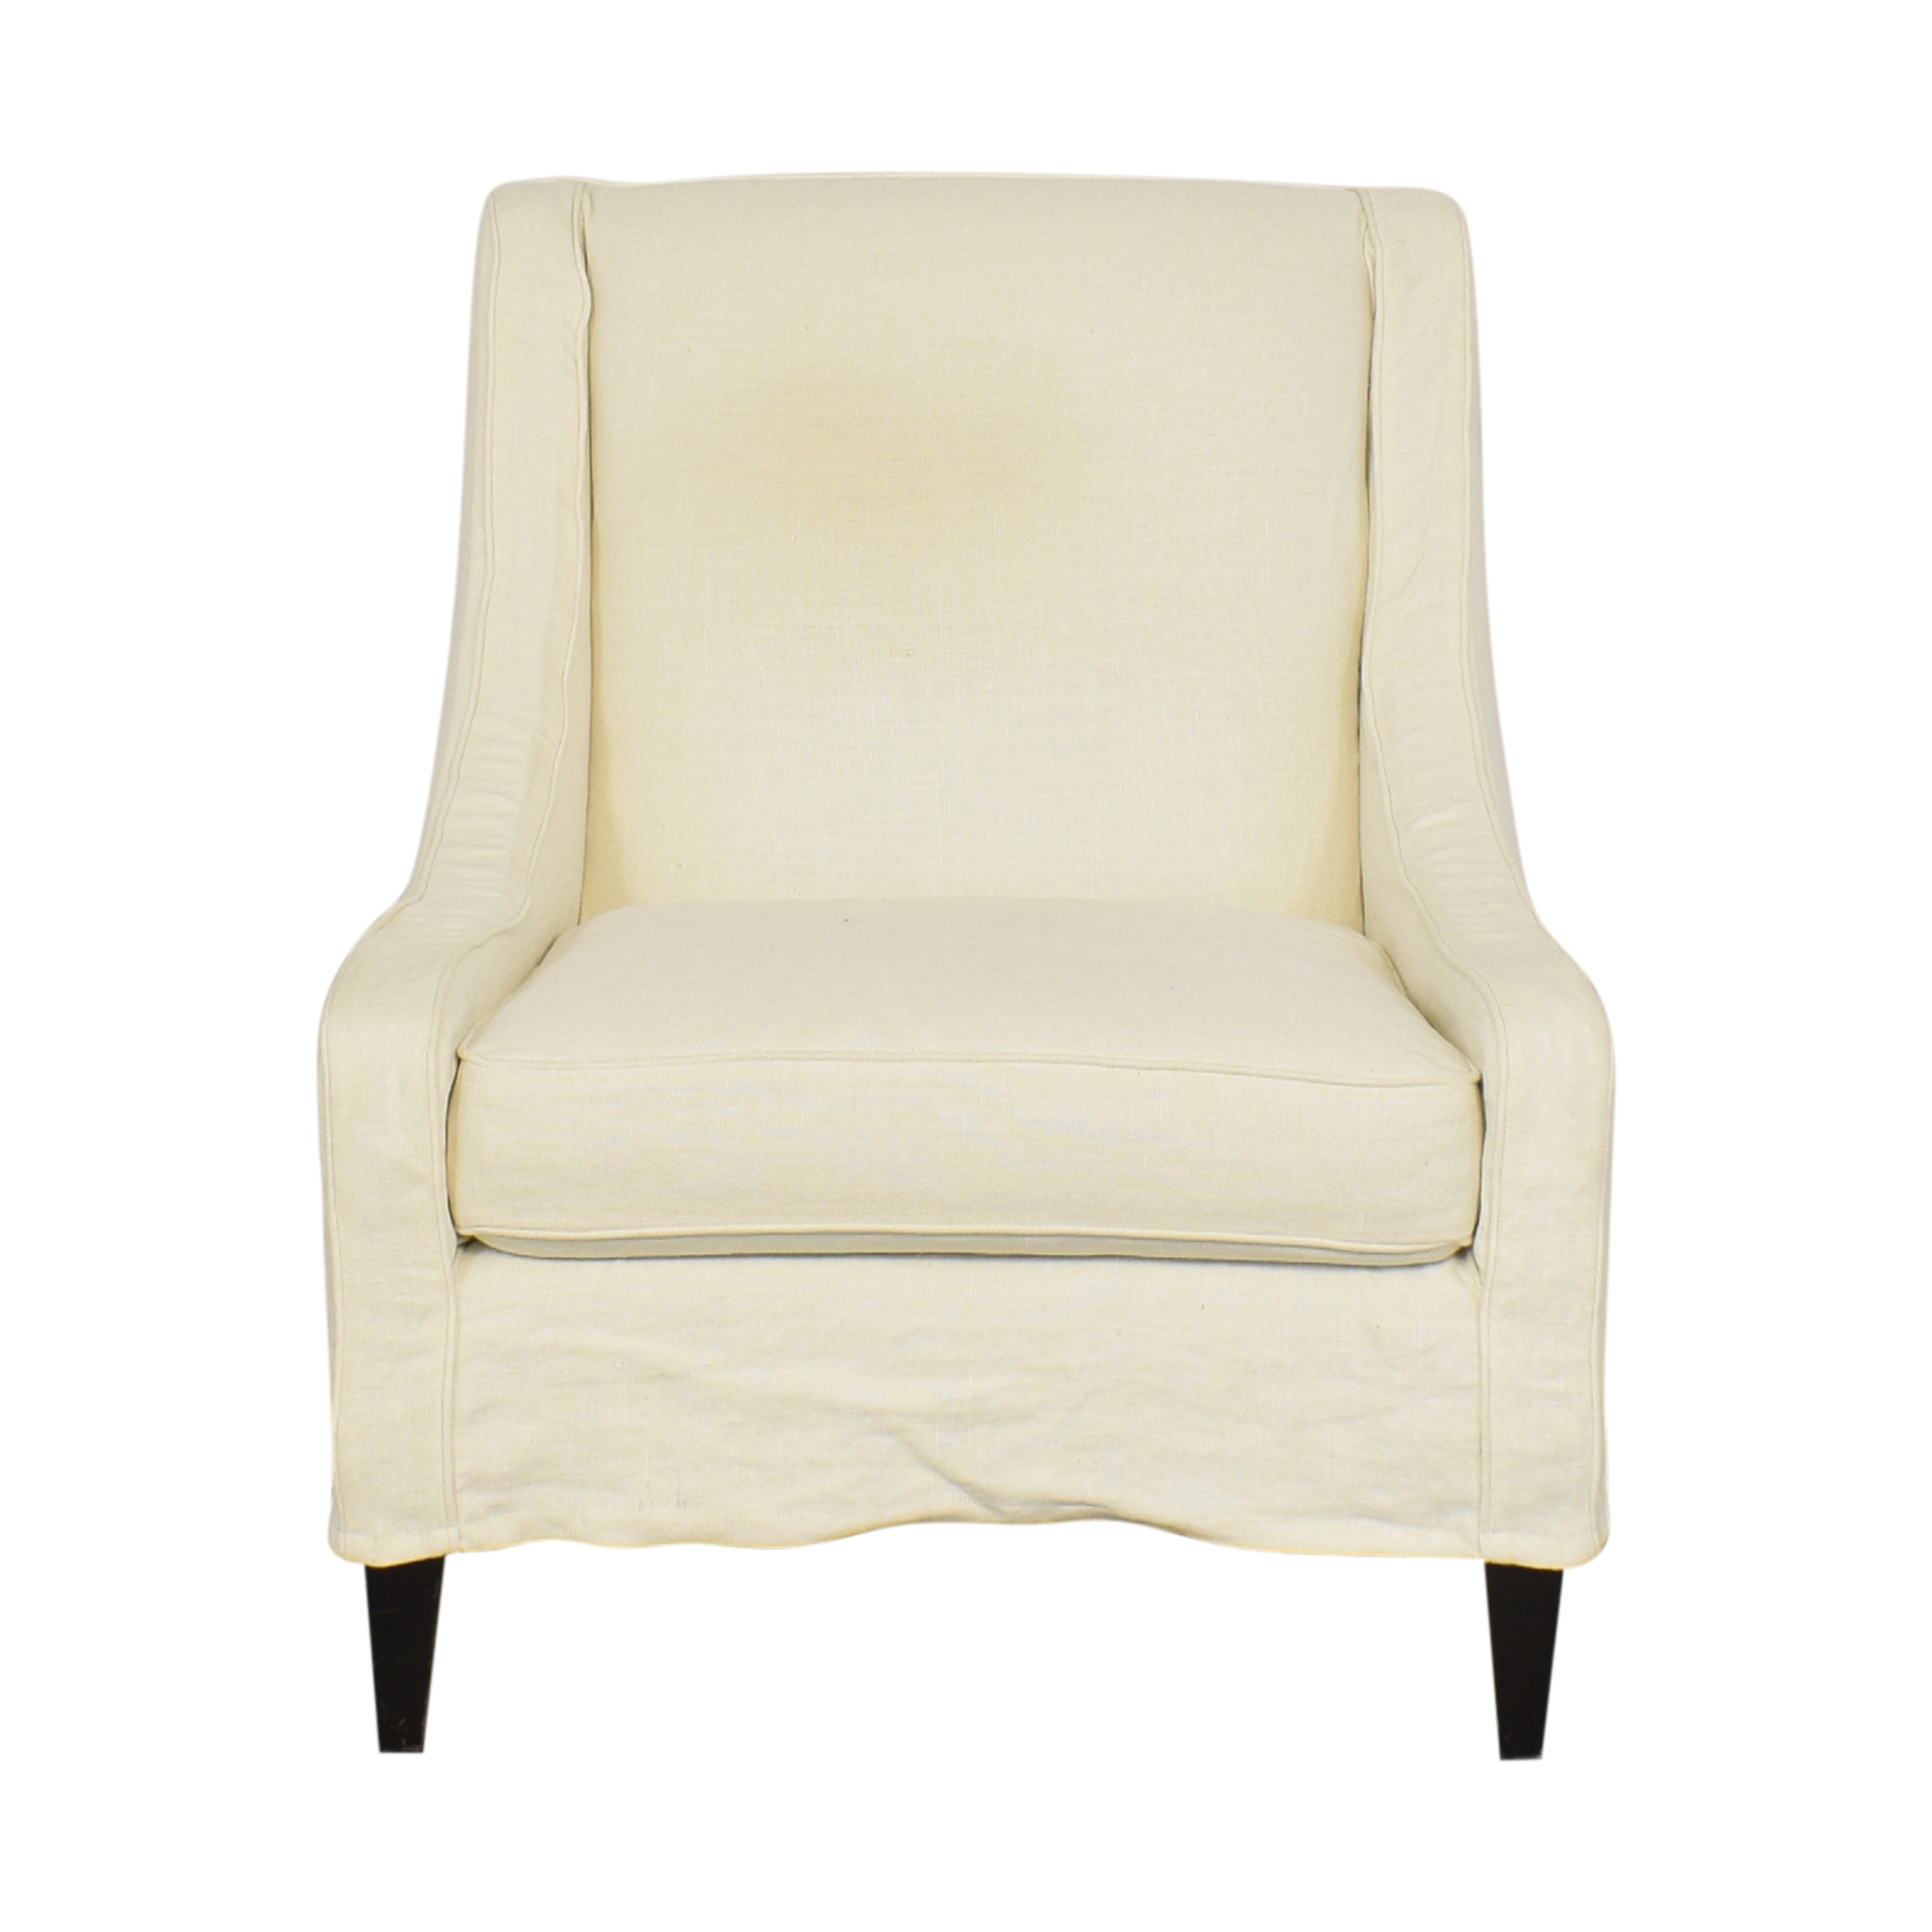 Crate & Barrel Crate & Barrel Slipcovered Accent Chair on sale